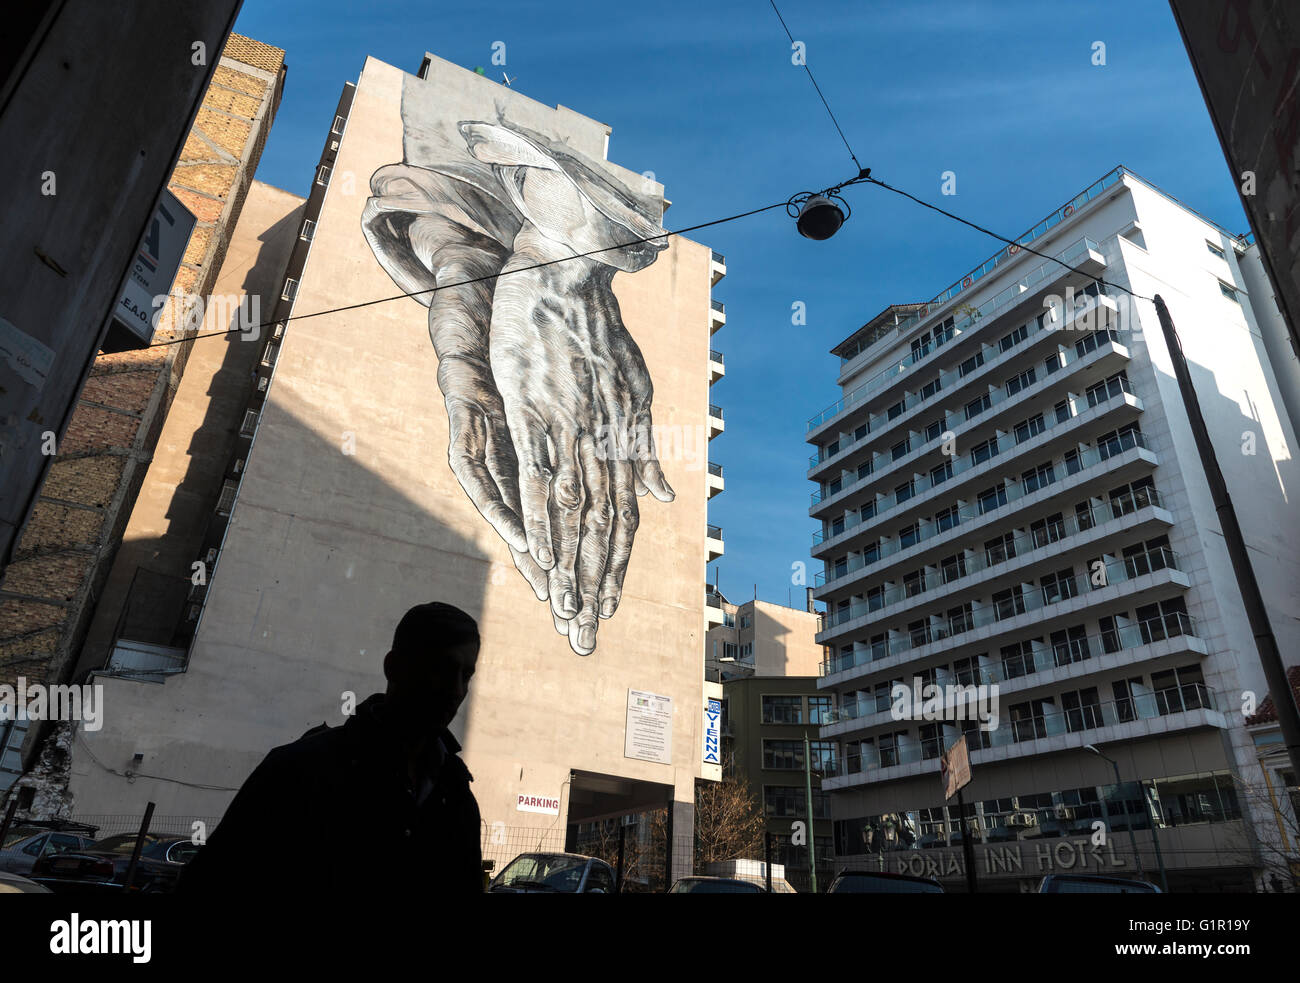 A street art mural in the form of a giant pair of praying hands looms over Pireos street in the Omonia district - Stock Image